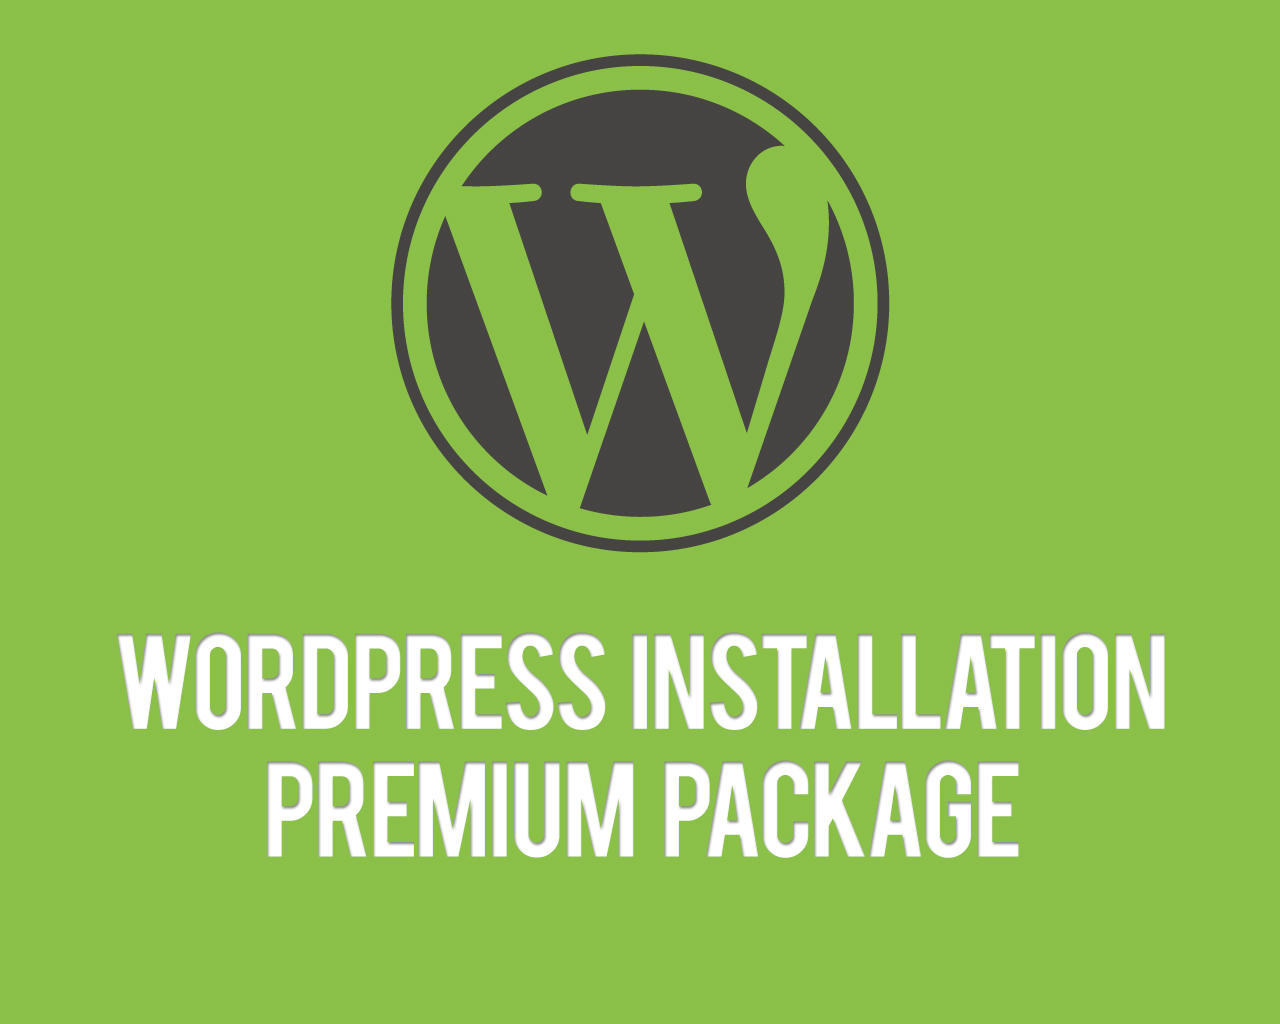 WordPress Theme Installation Premium Package (Demo Setup, SEO, Security, Performance, Backup & More) by webdesignerart - 97946